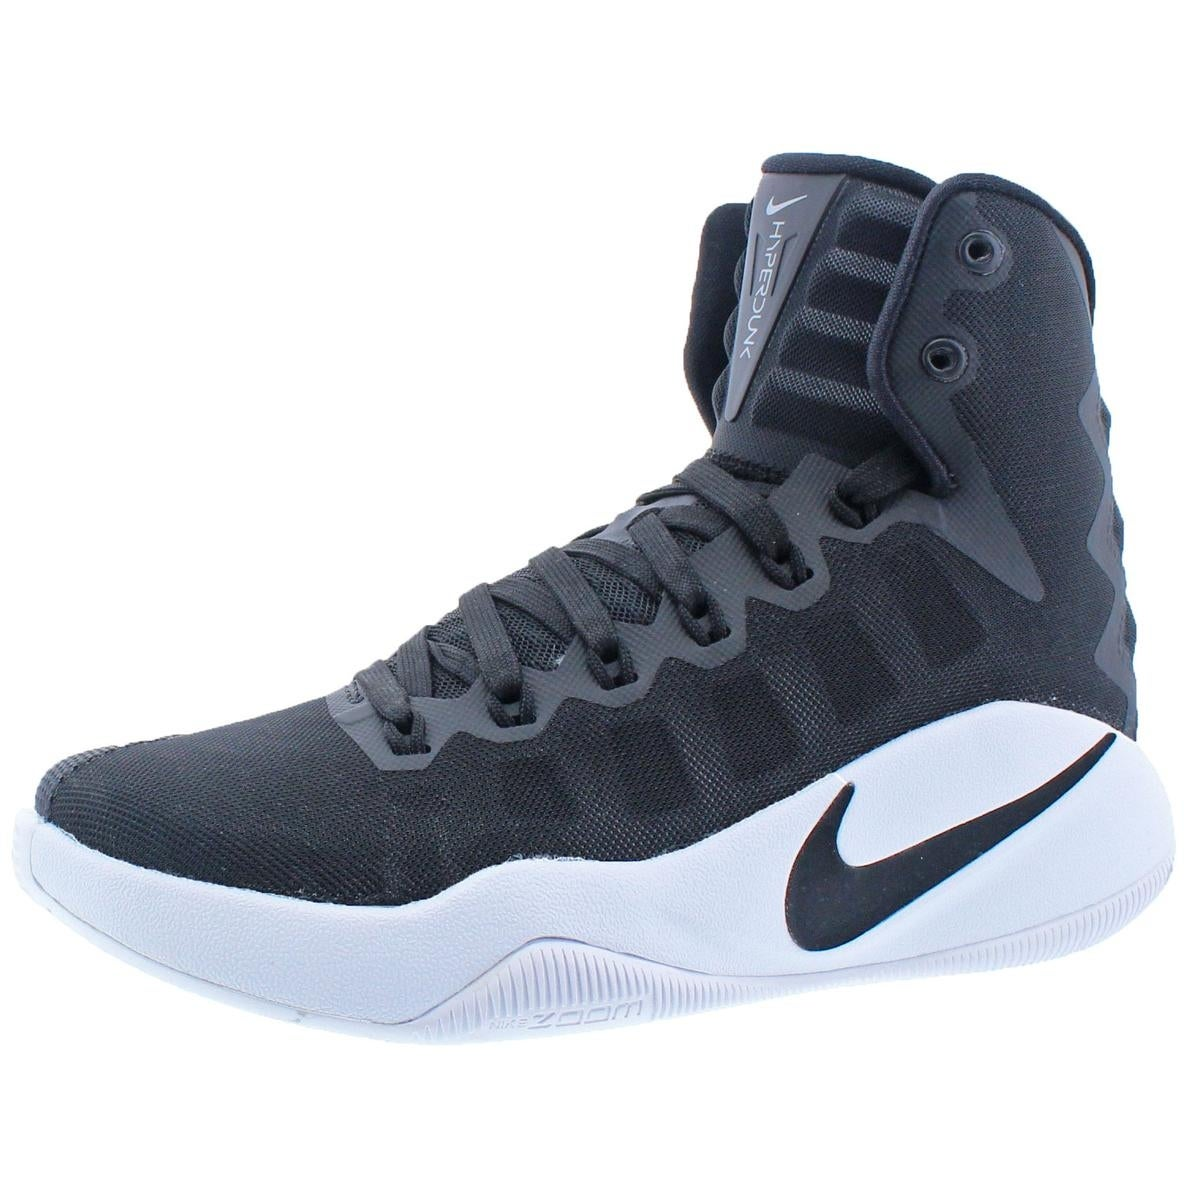 d70493fb80f ... discount shop nike womens hyperdunk 2016 tb basketball shoes nike zoom  mid top free shipping today